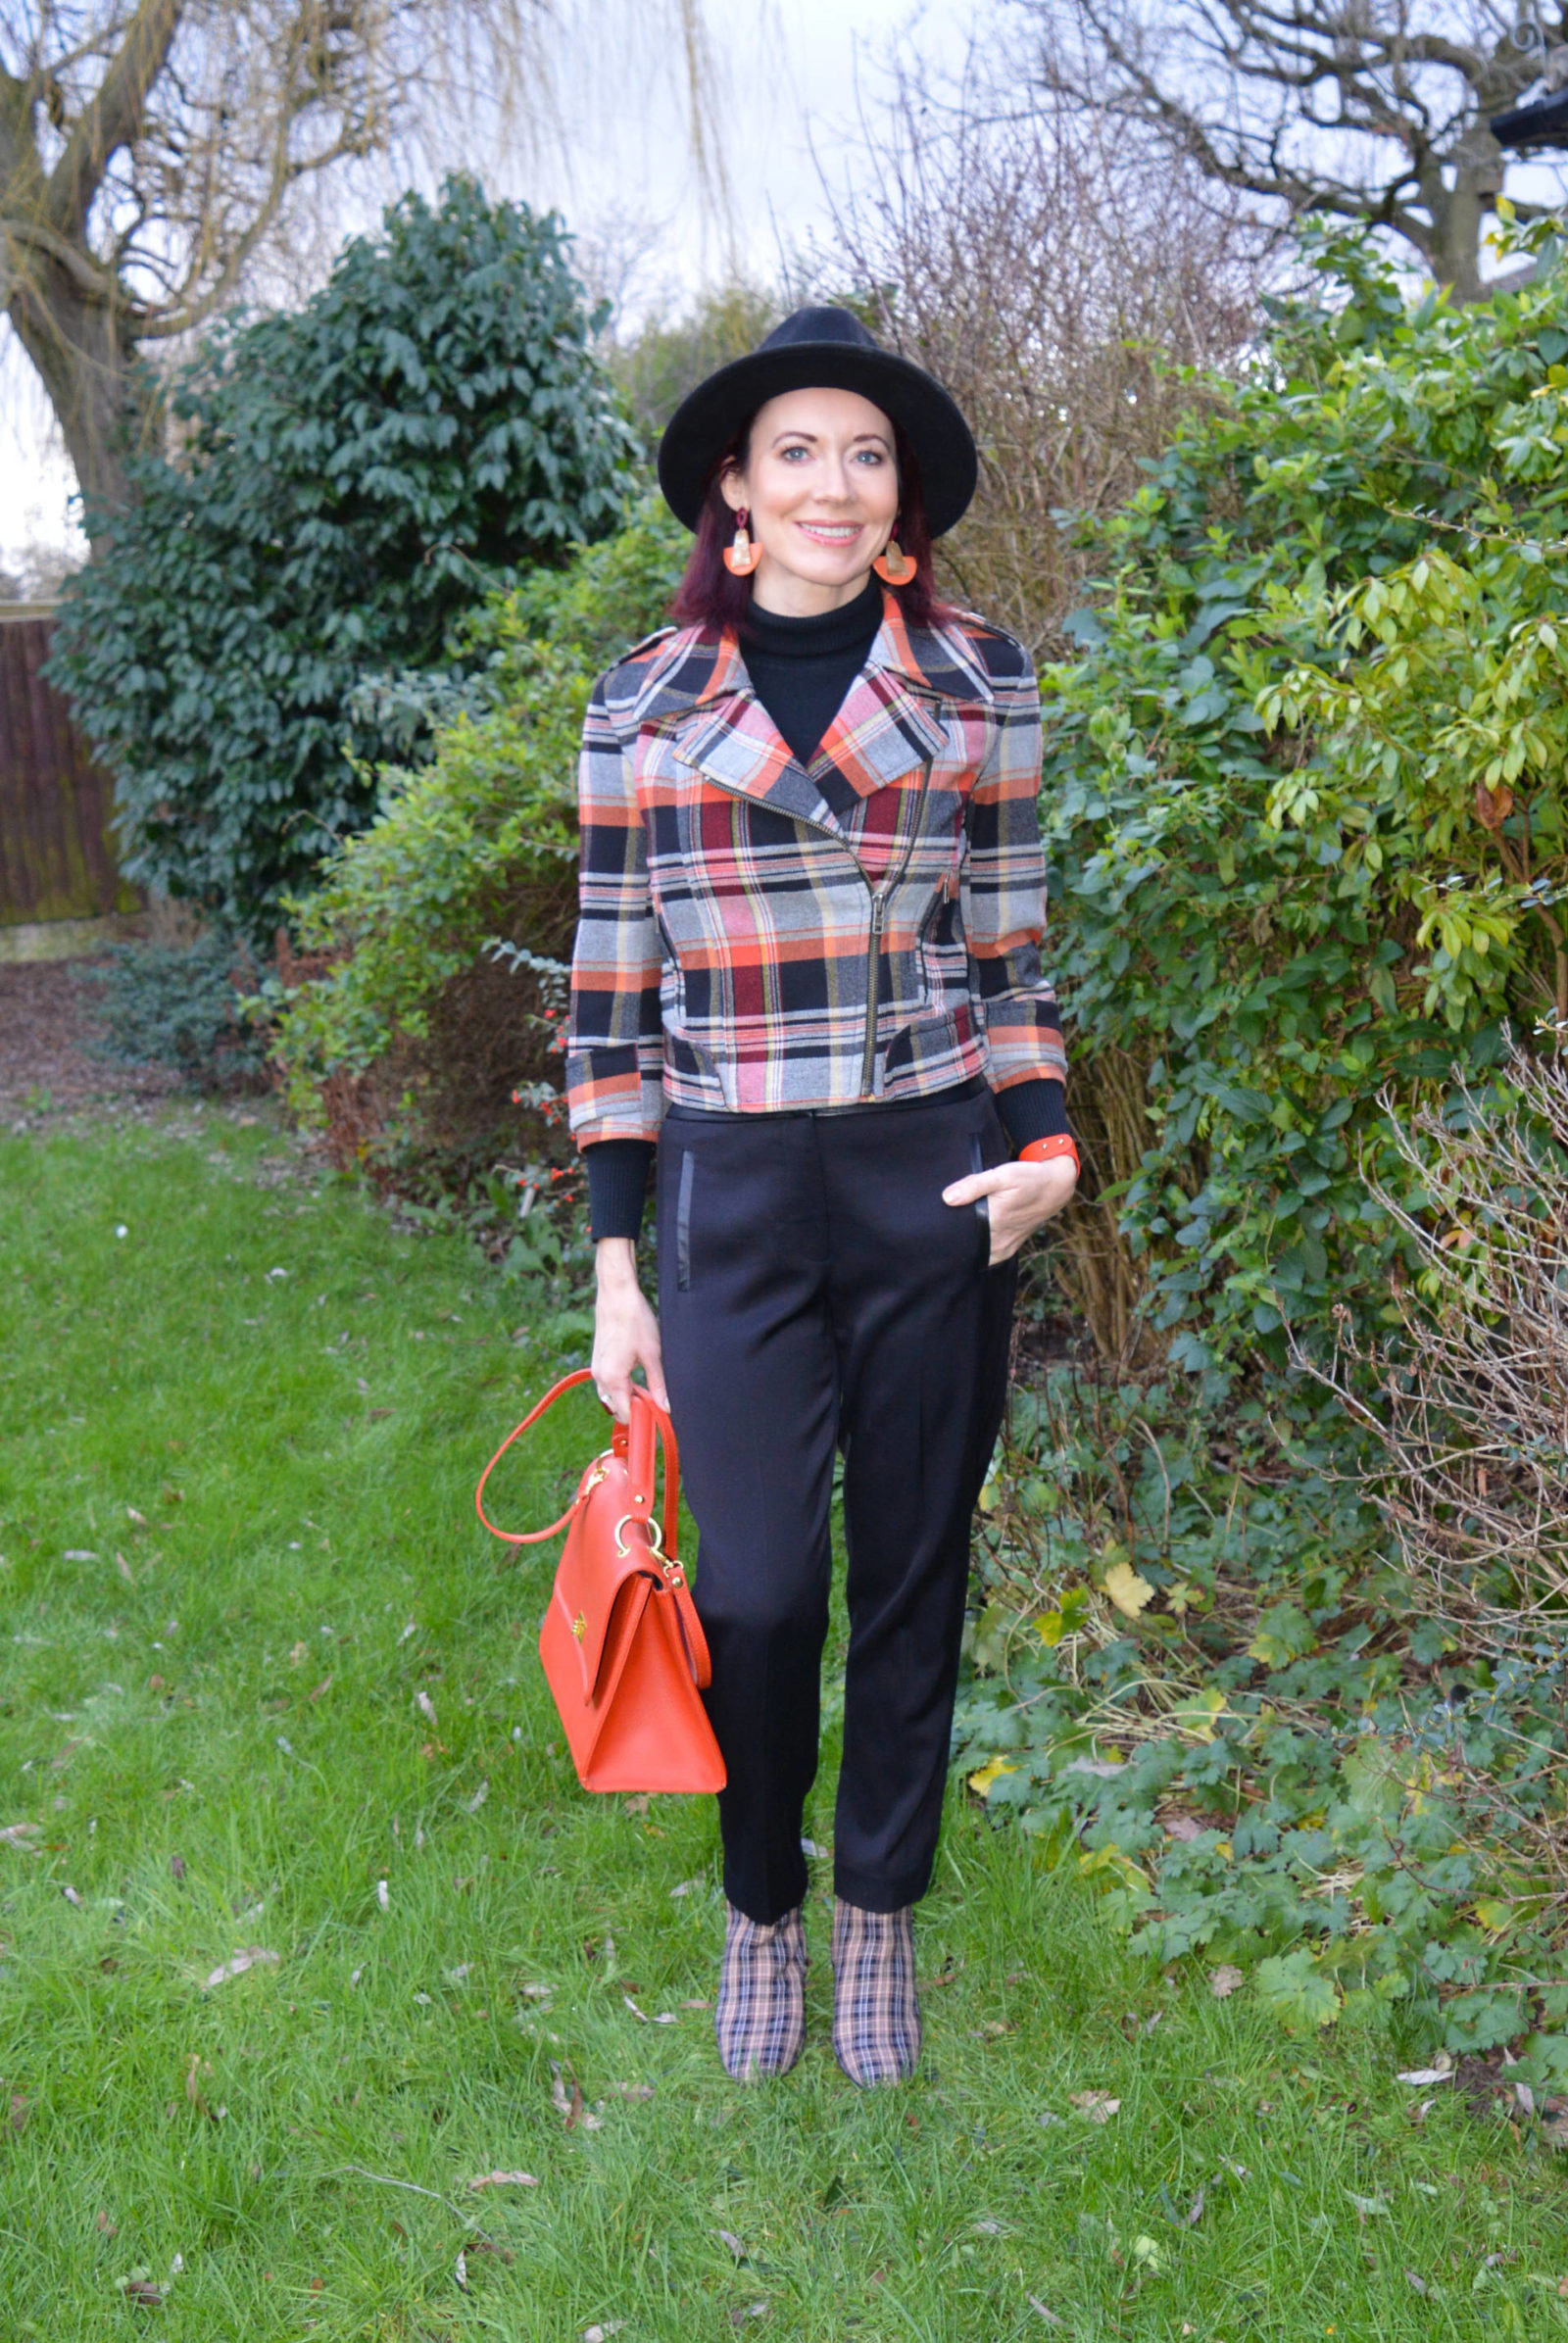 French Connection Tartan jacket and check ankle boots